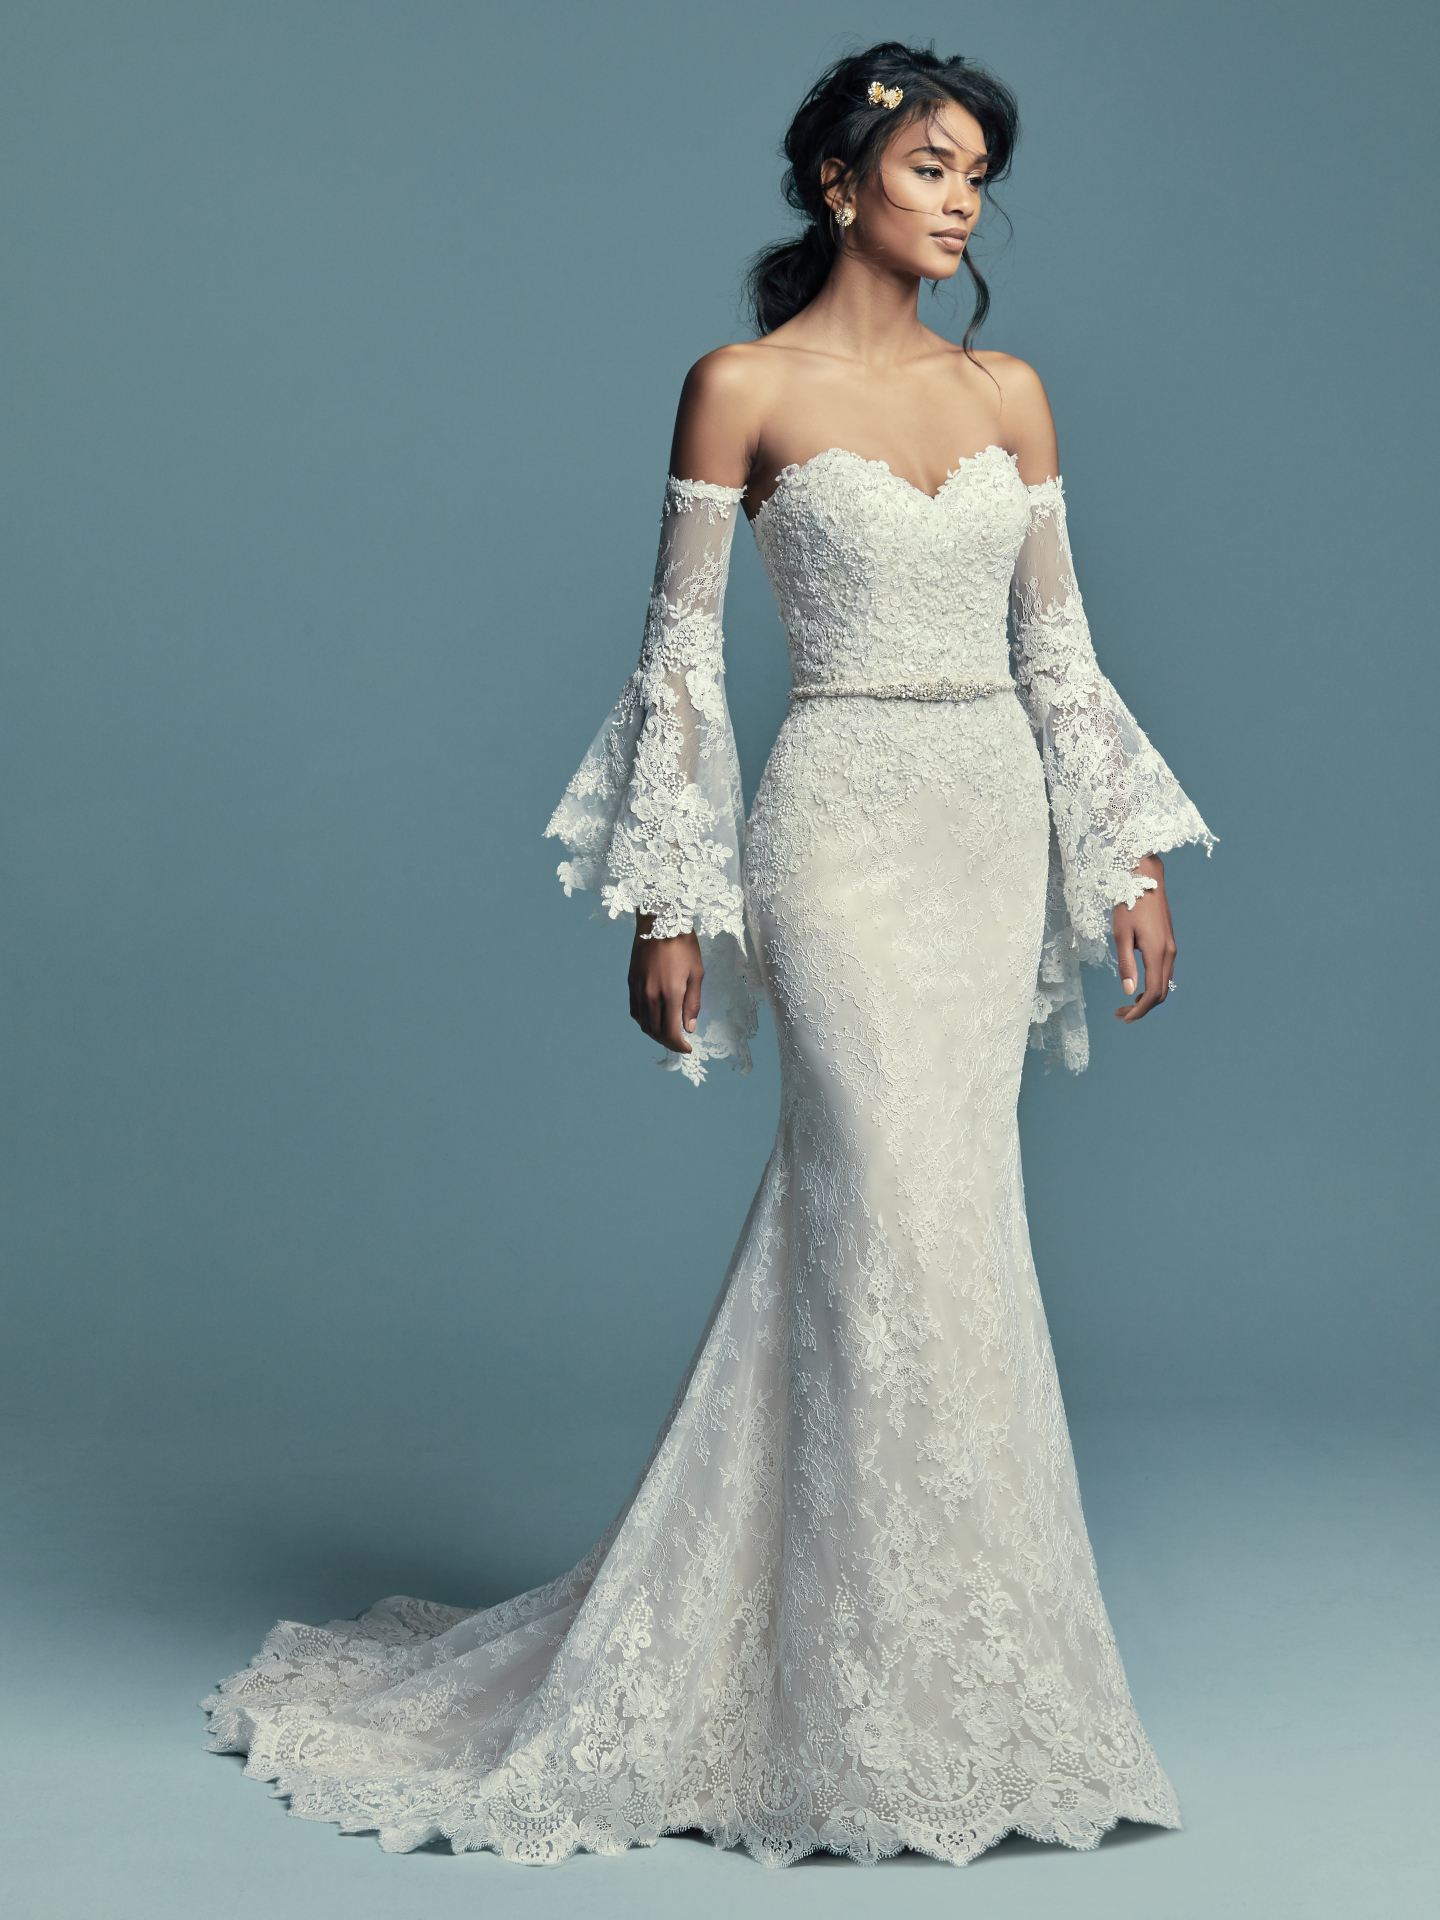 New Boho Wedding Dresses from the Lucienne Collection - Tenille by Maggie Sottero